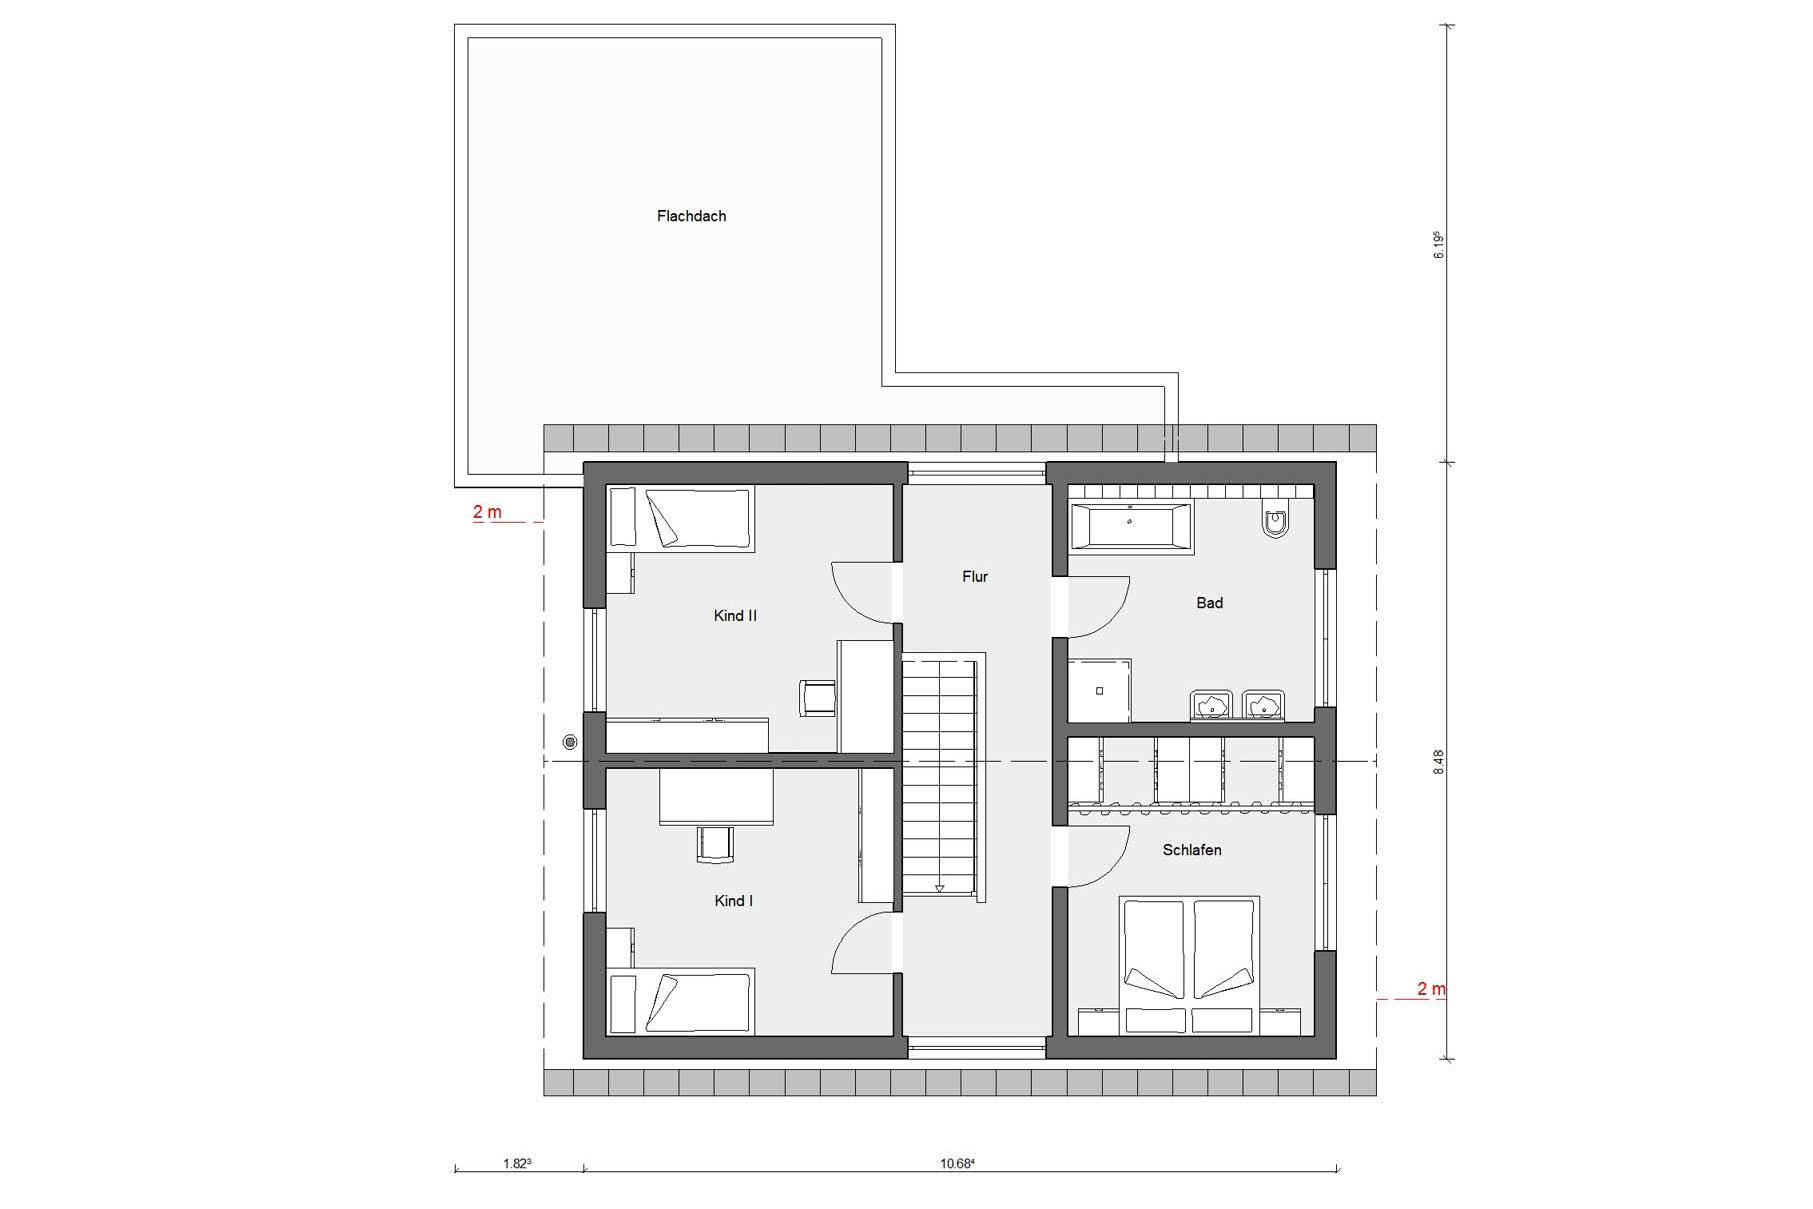 Ground floor attic E 15-179.1 The energy house for families